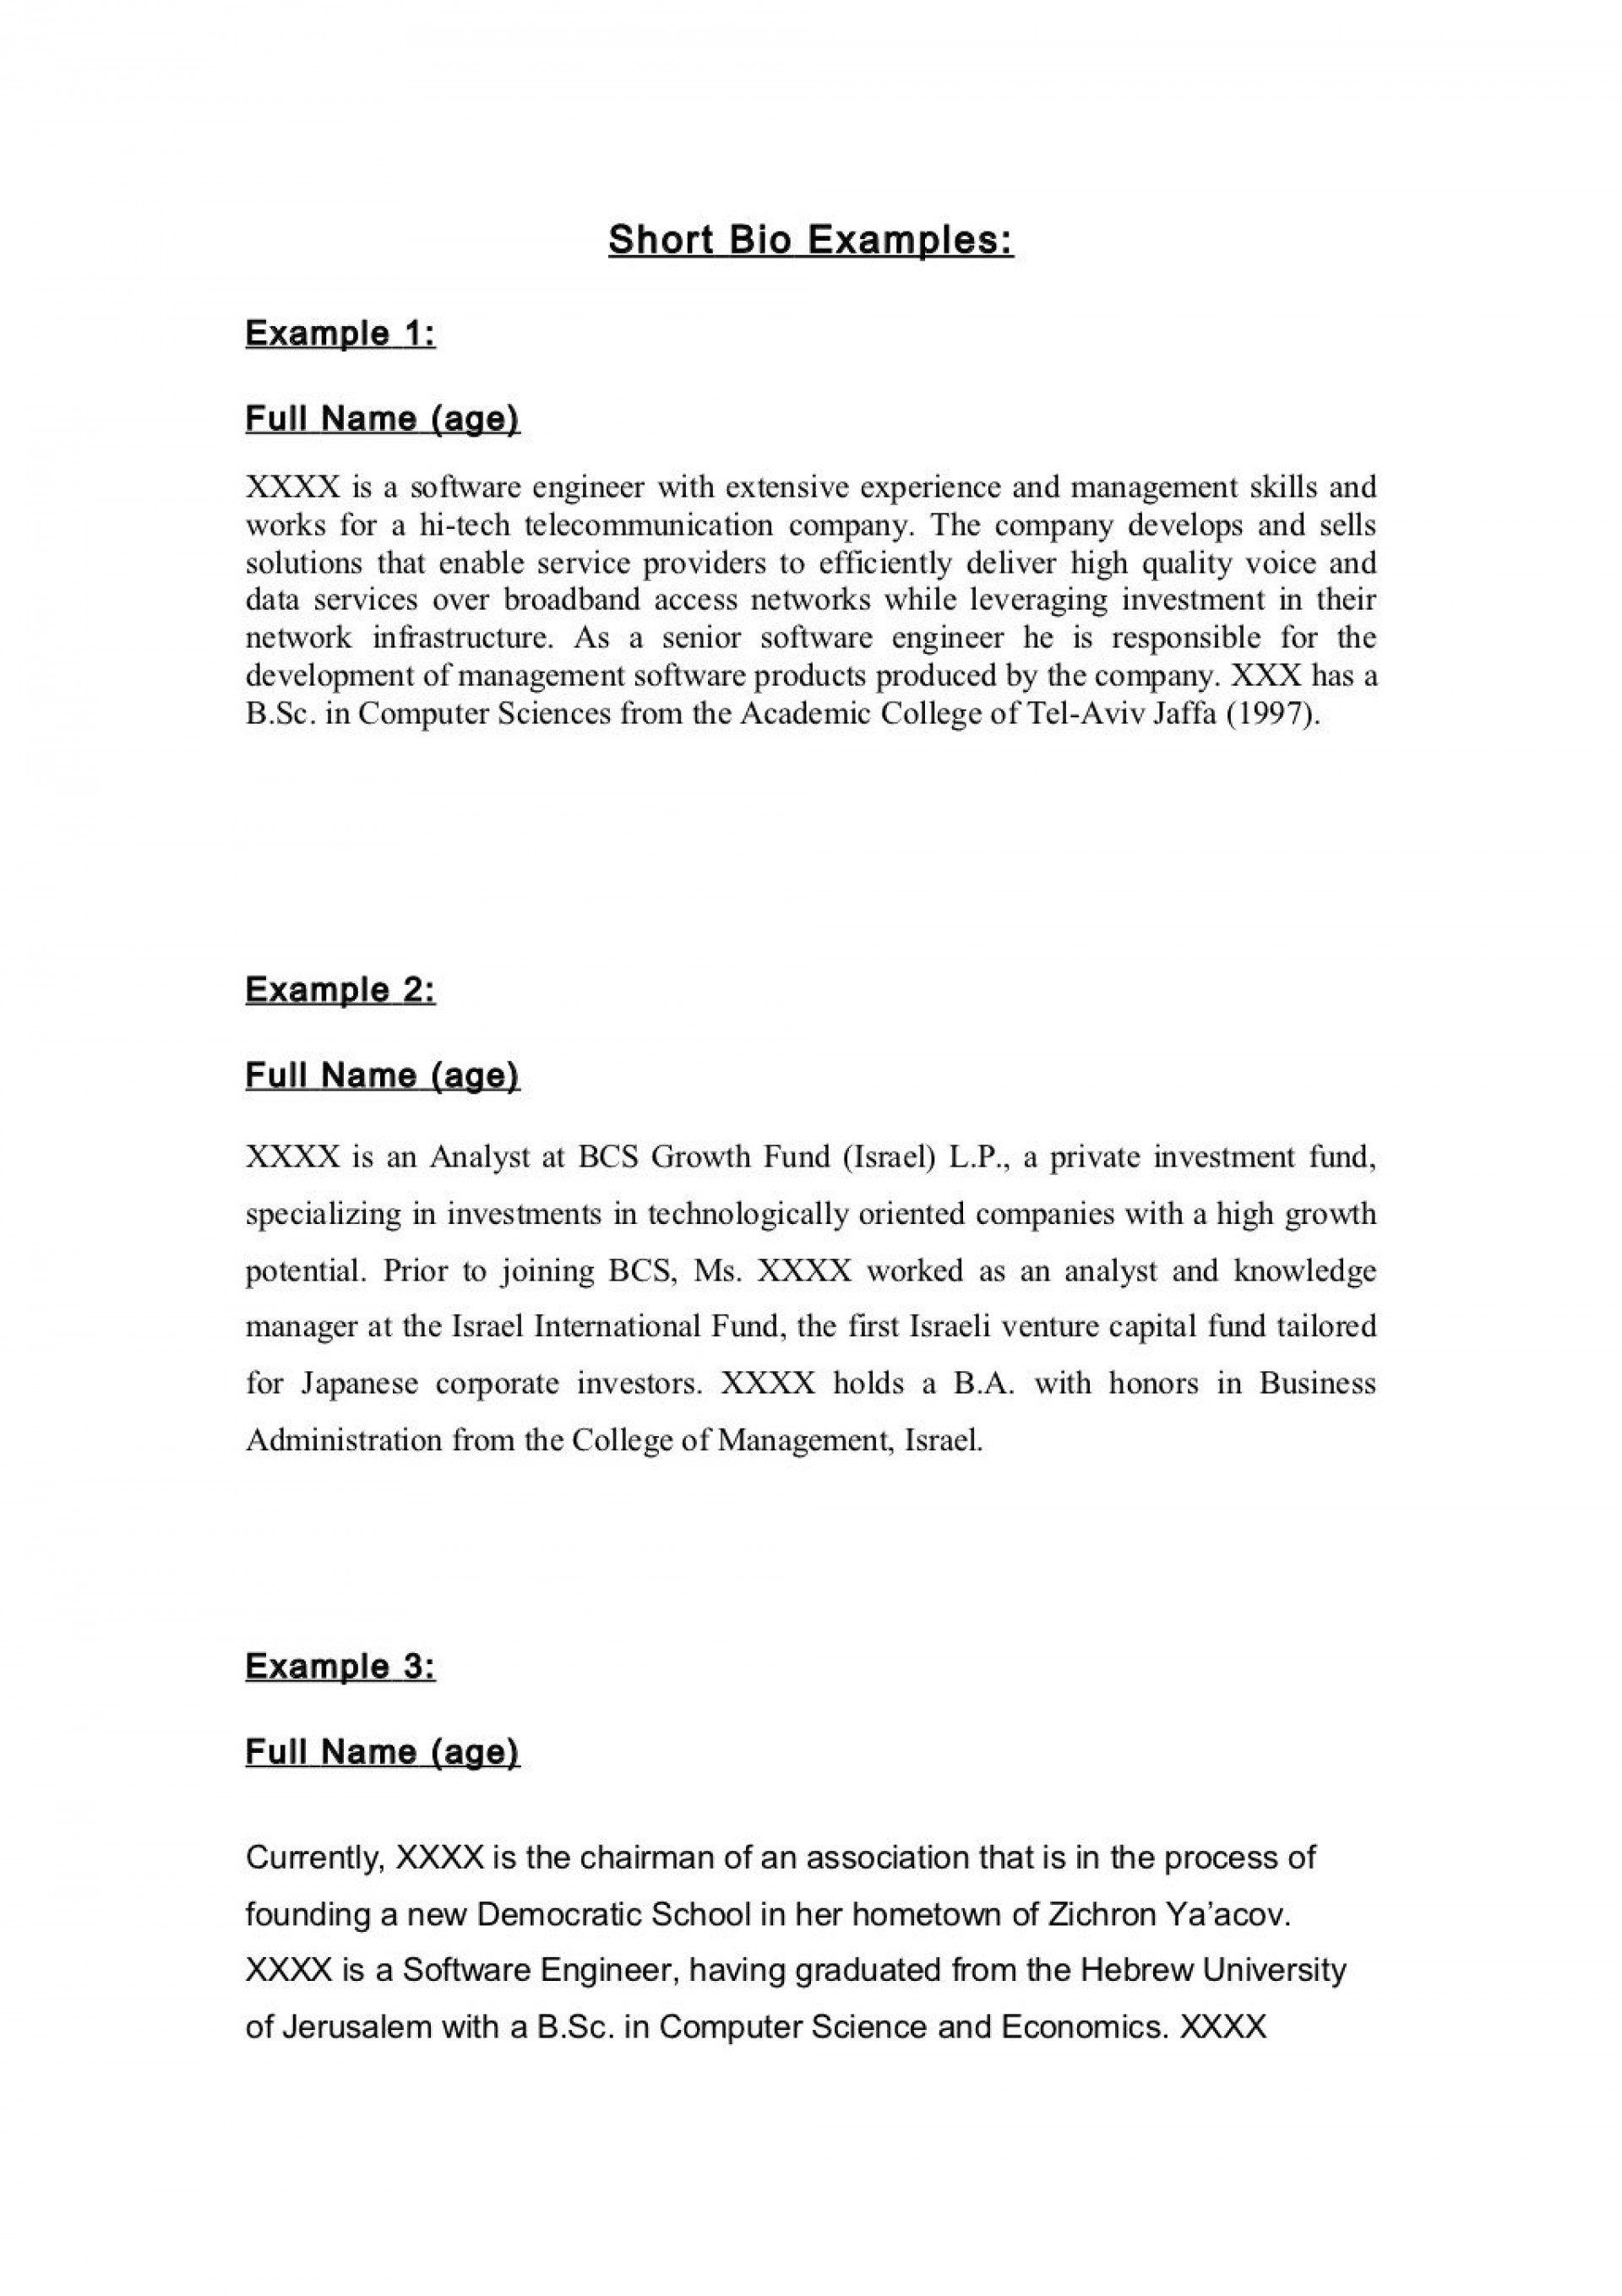 006 Essay Example Short Breathtaking Examples For Students Argumentative High School 1920